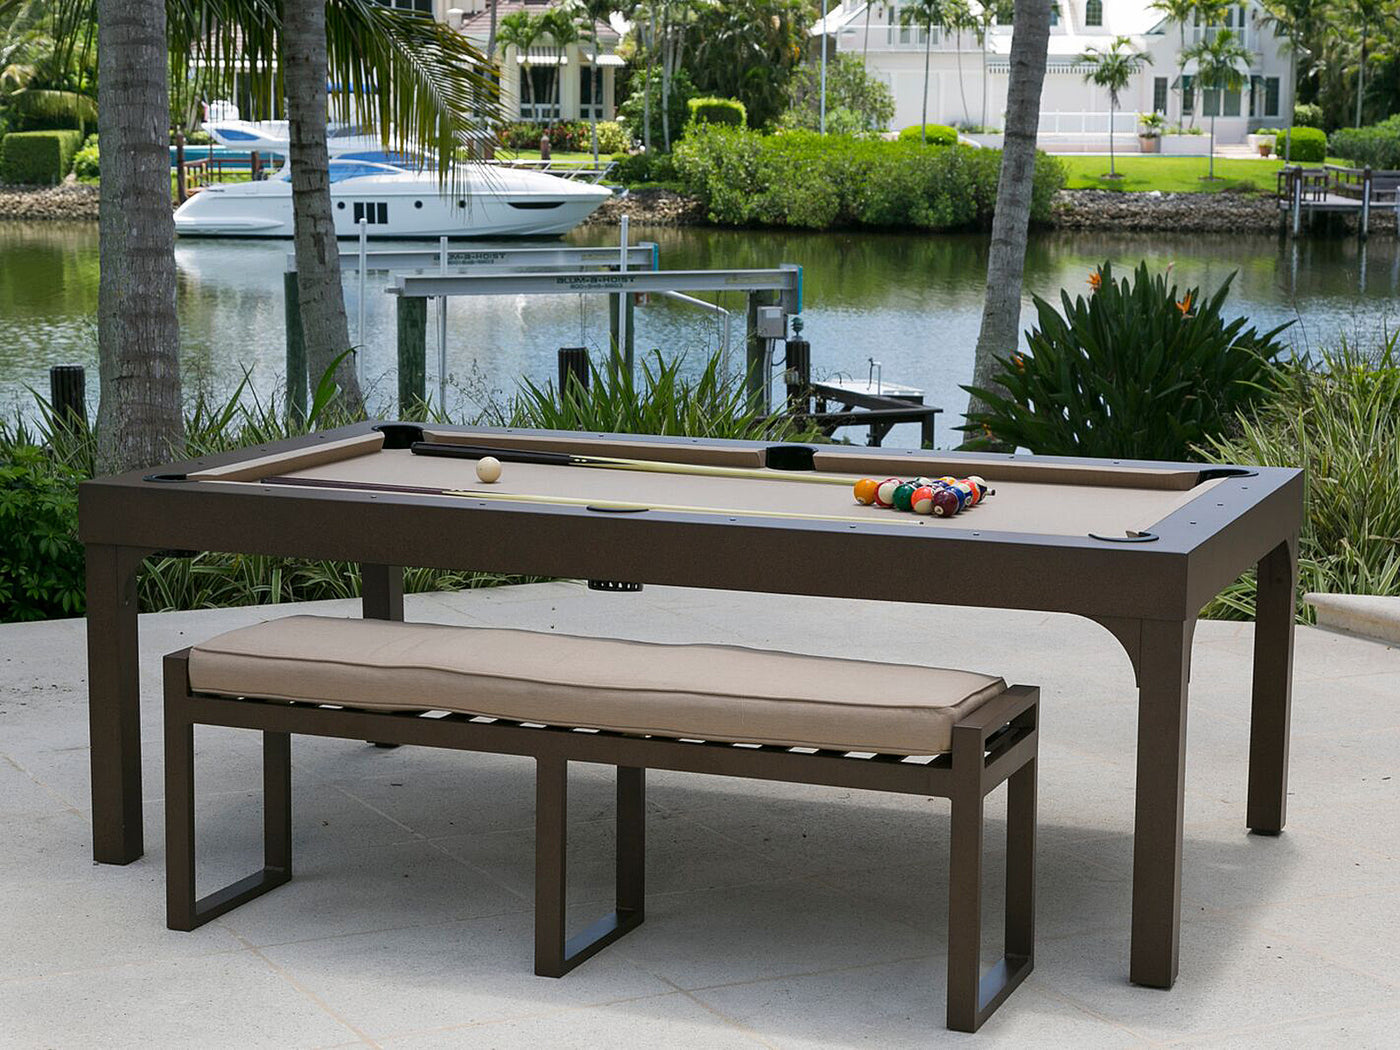 Balcony Outdoor Pool Table No Dining Top Speckled Oak